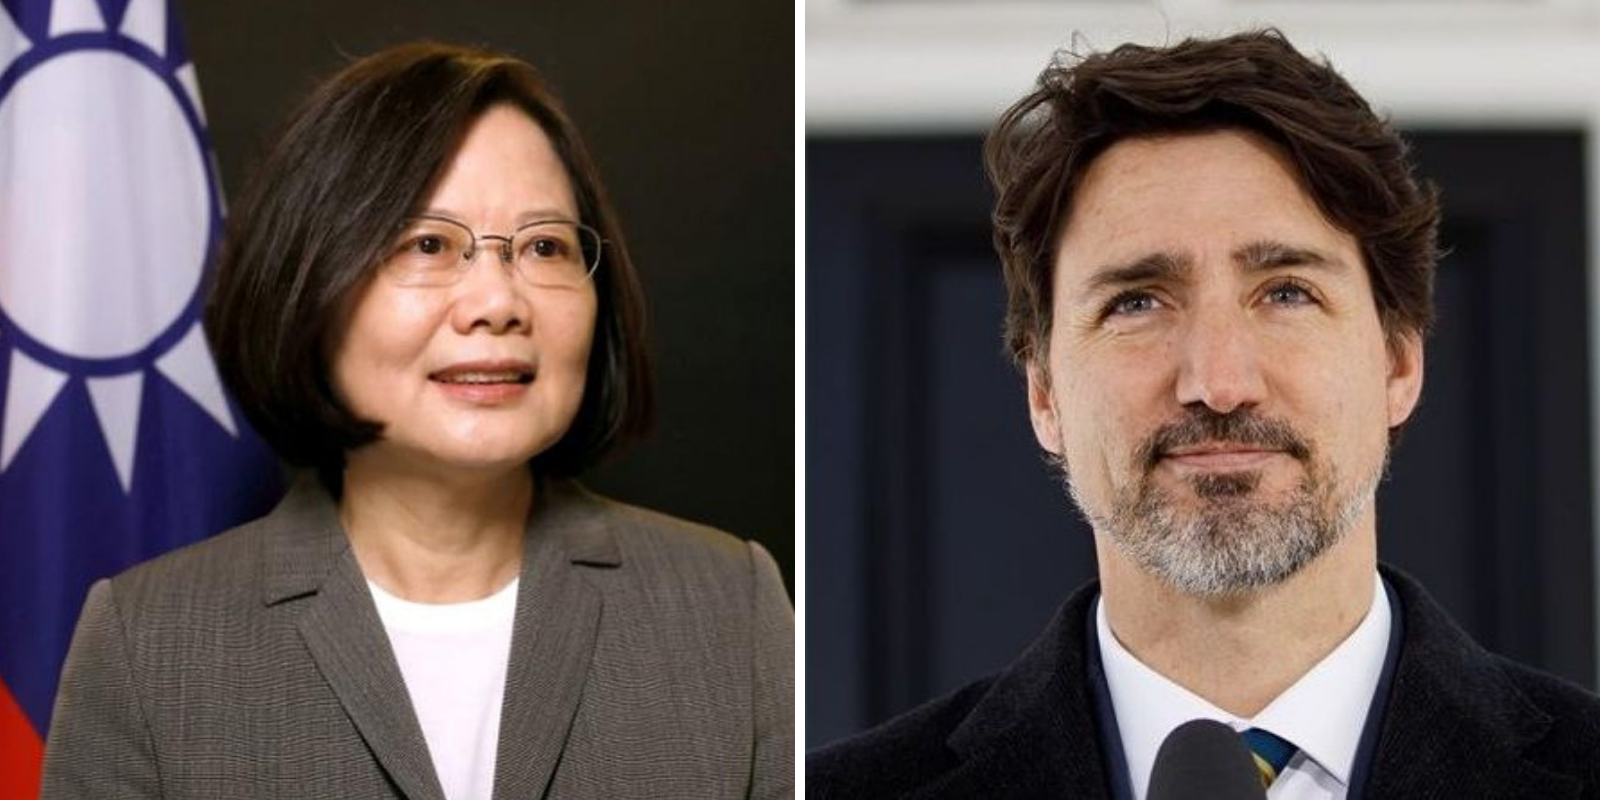 Trudeau government must embrace Taiwan in diplomacy and trade